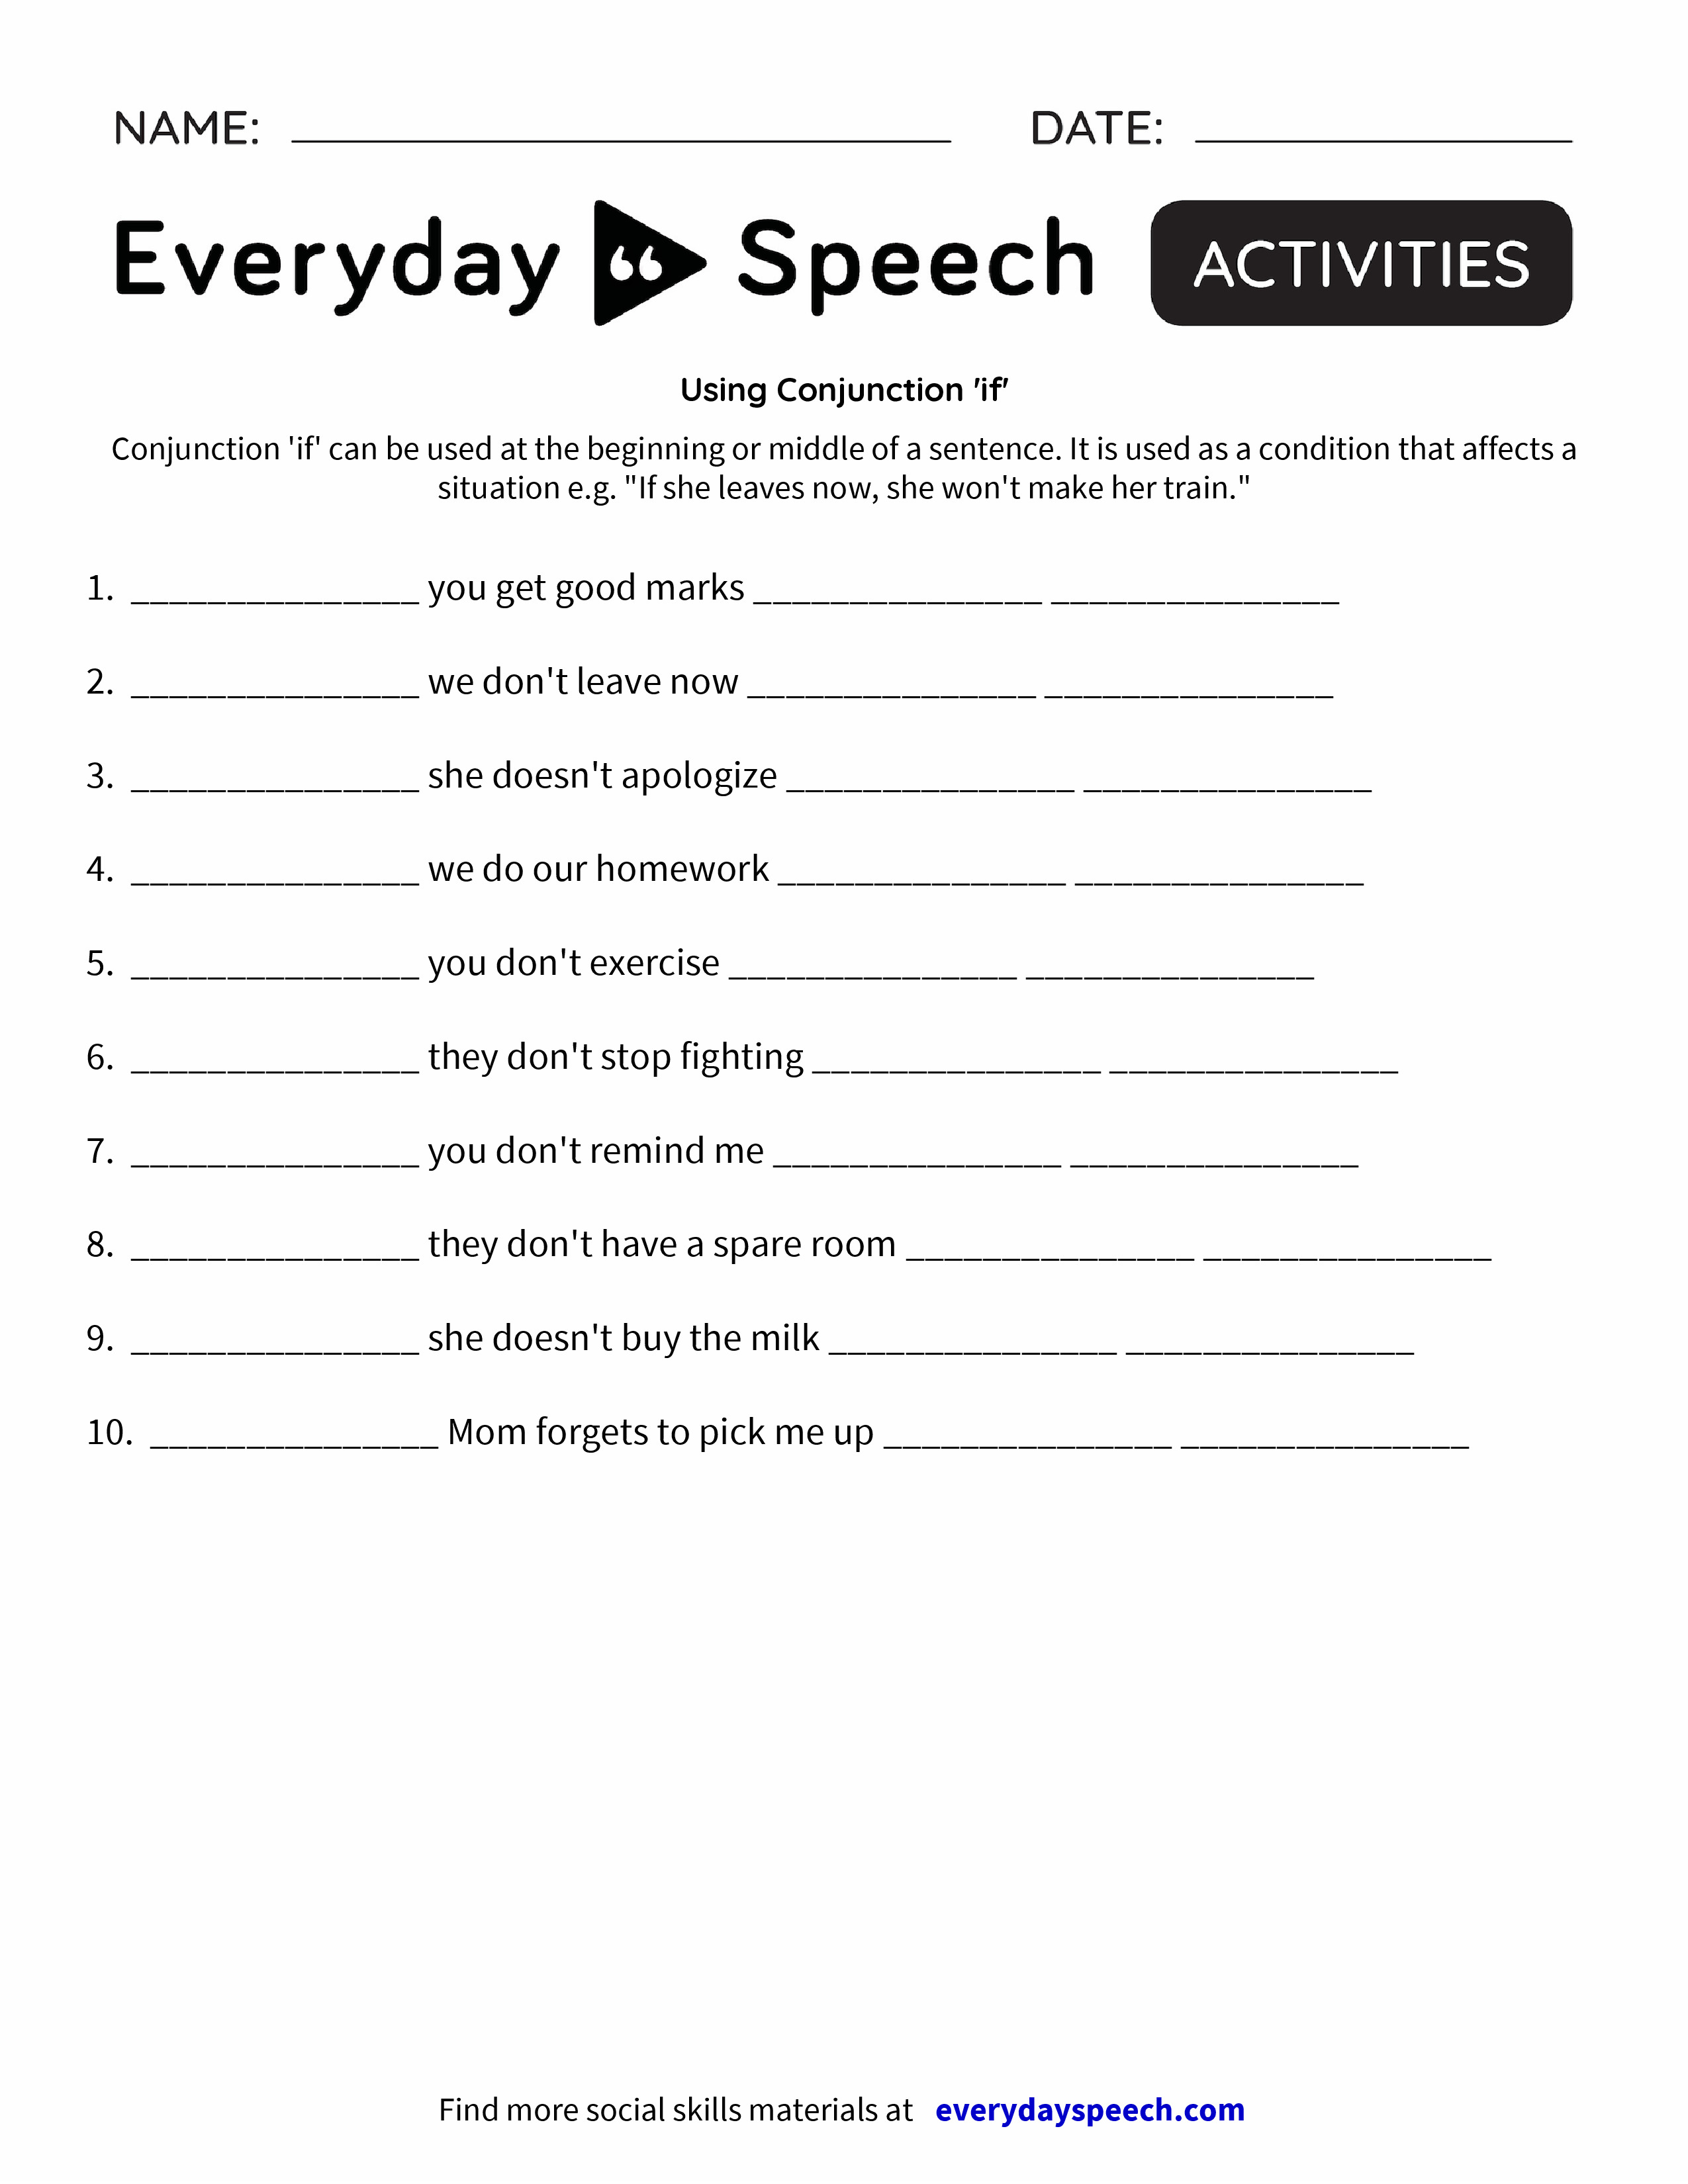 Using Conjunction if Everyday Speech Everyday Speech – Conjunction Worksheets